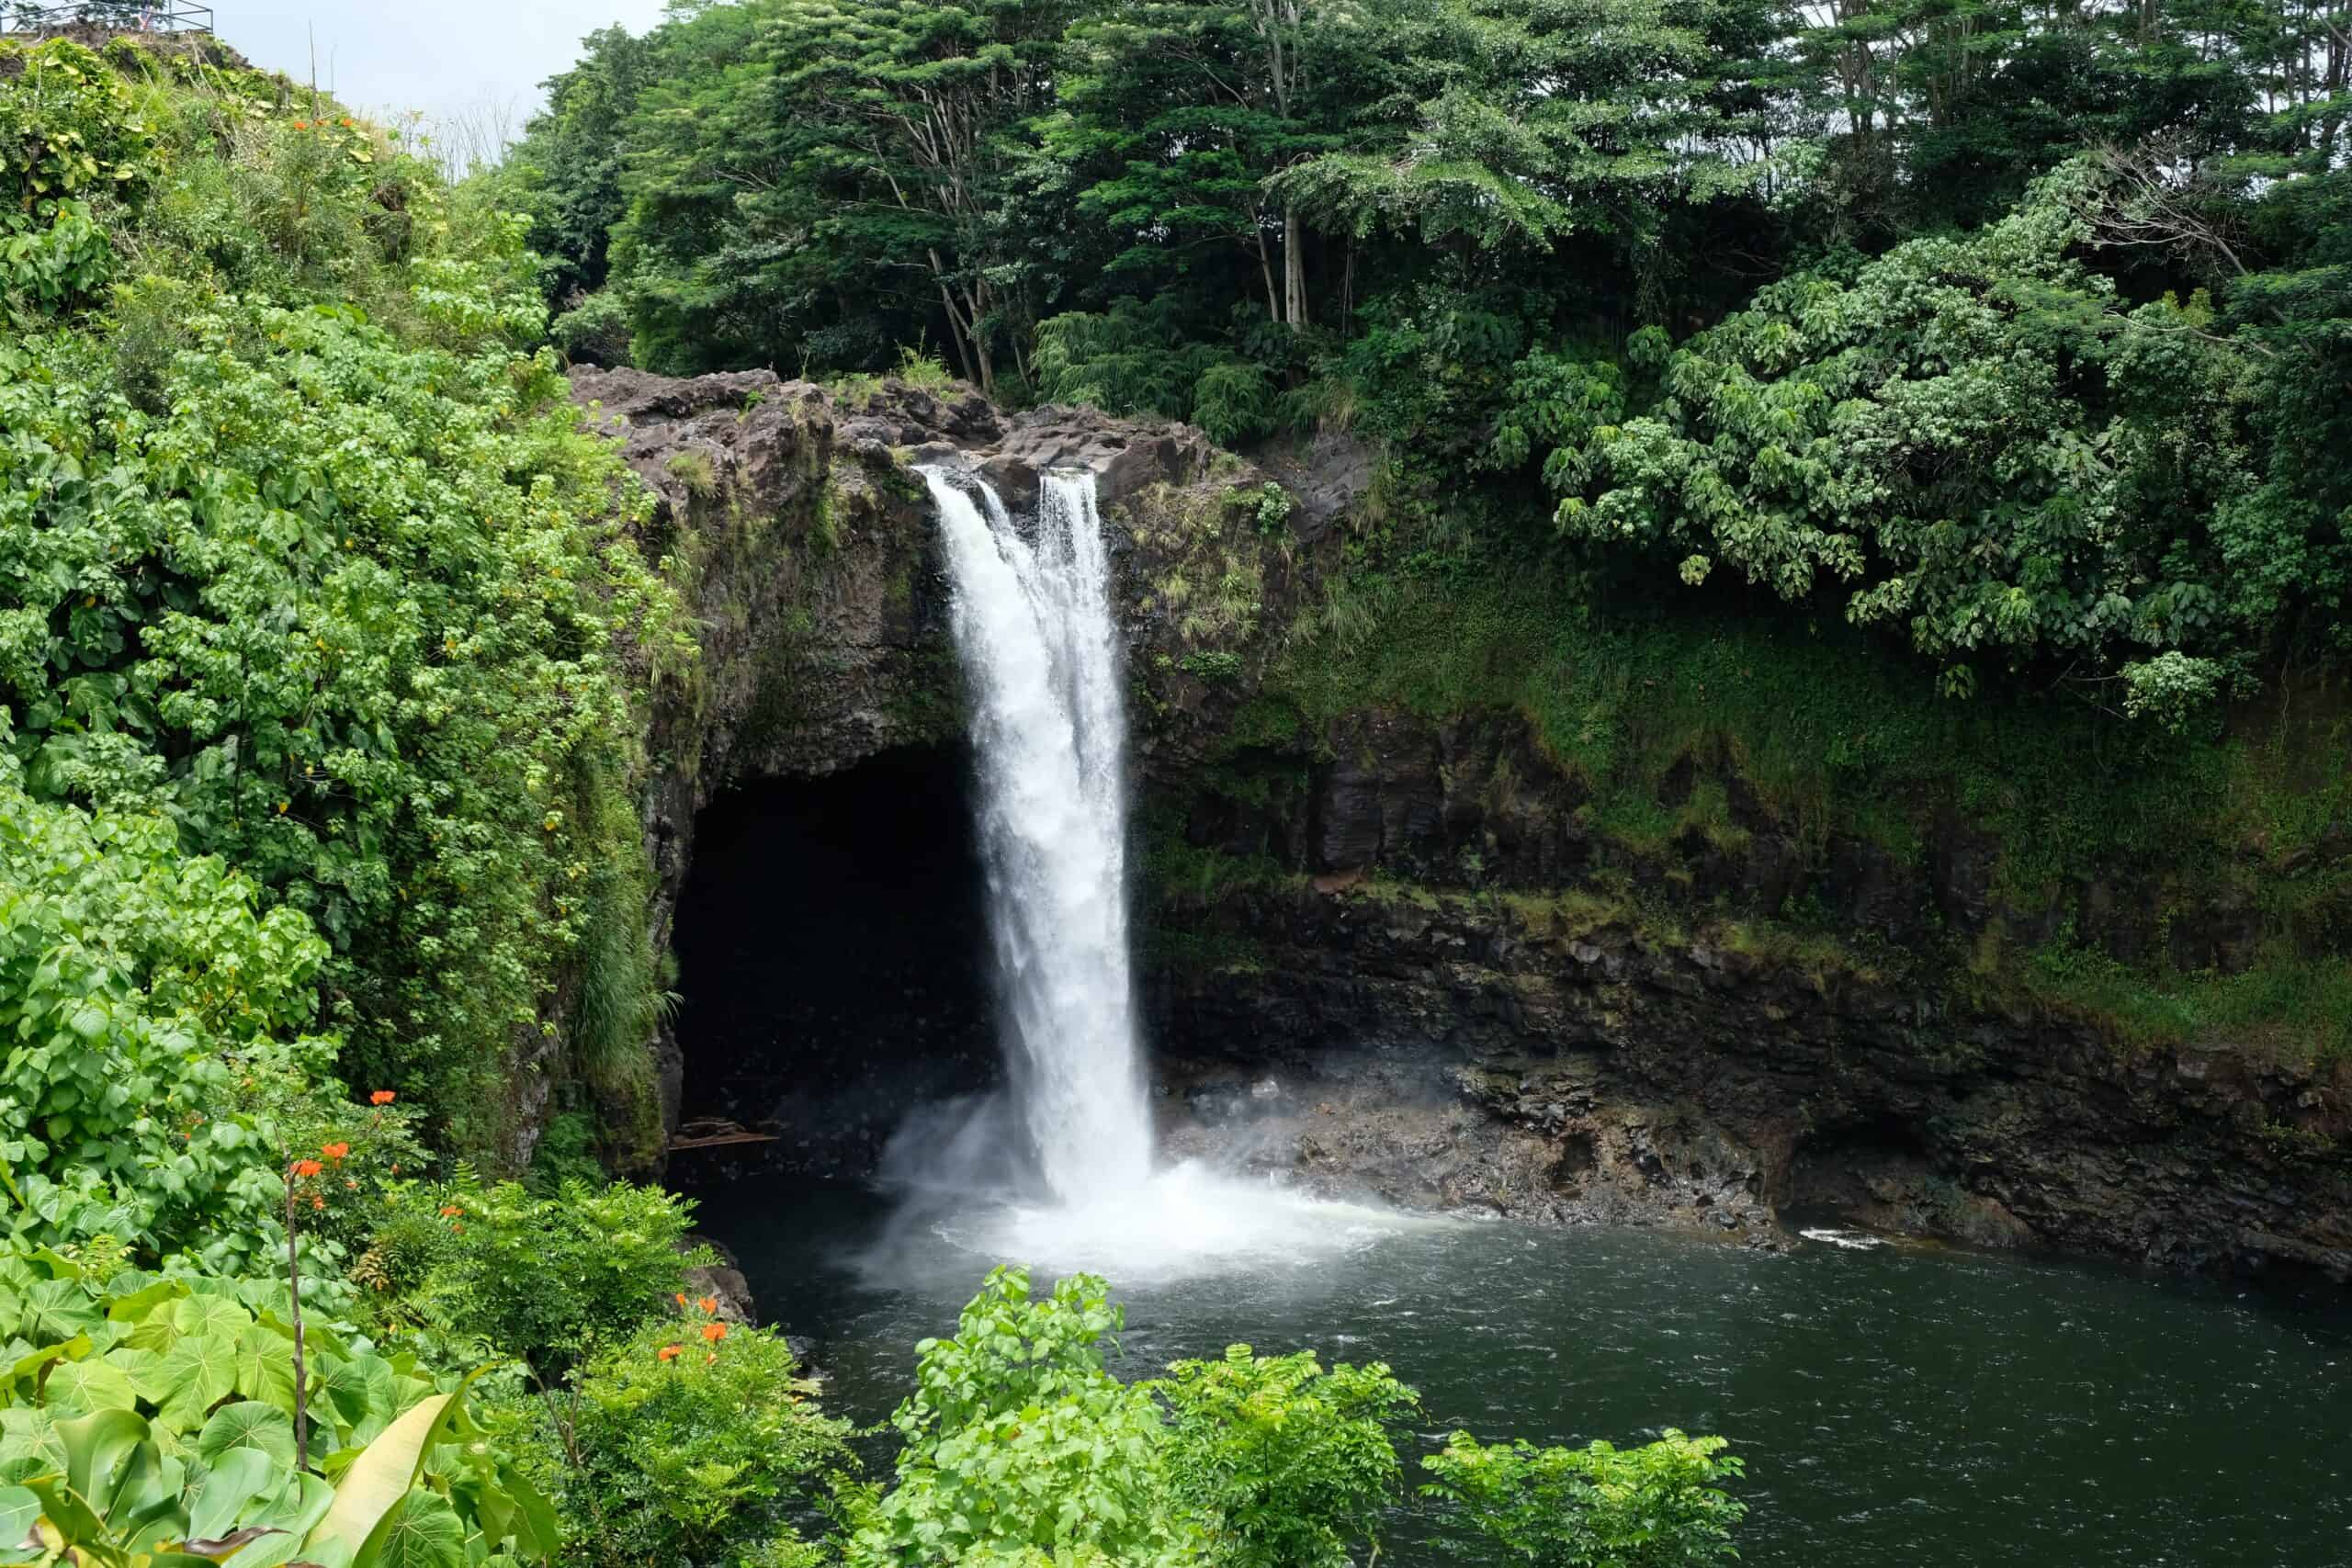 31 Instagram Captions for Waterfalls Photos